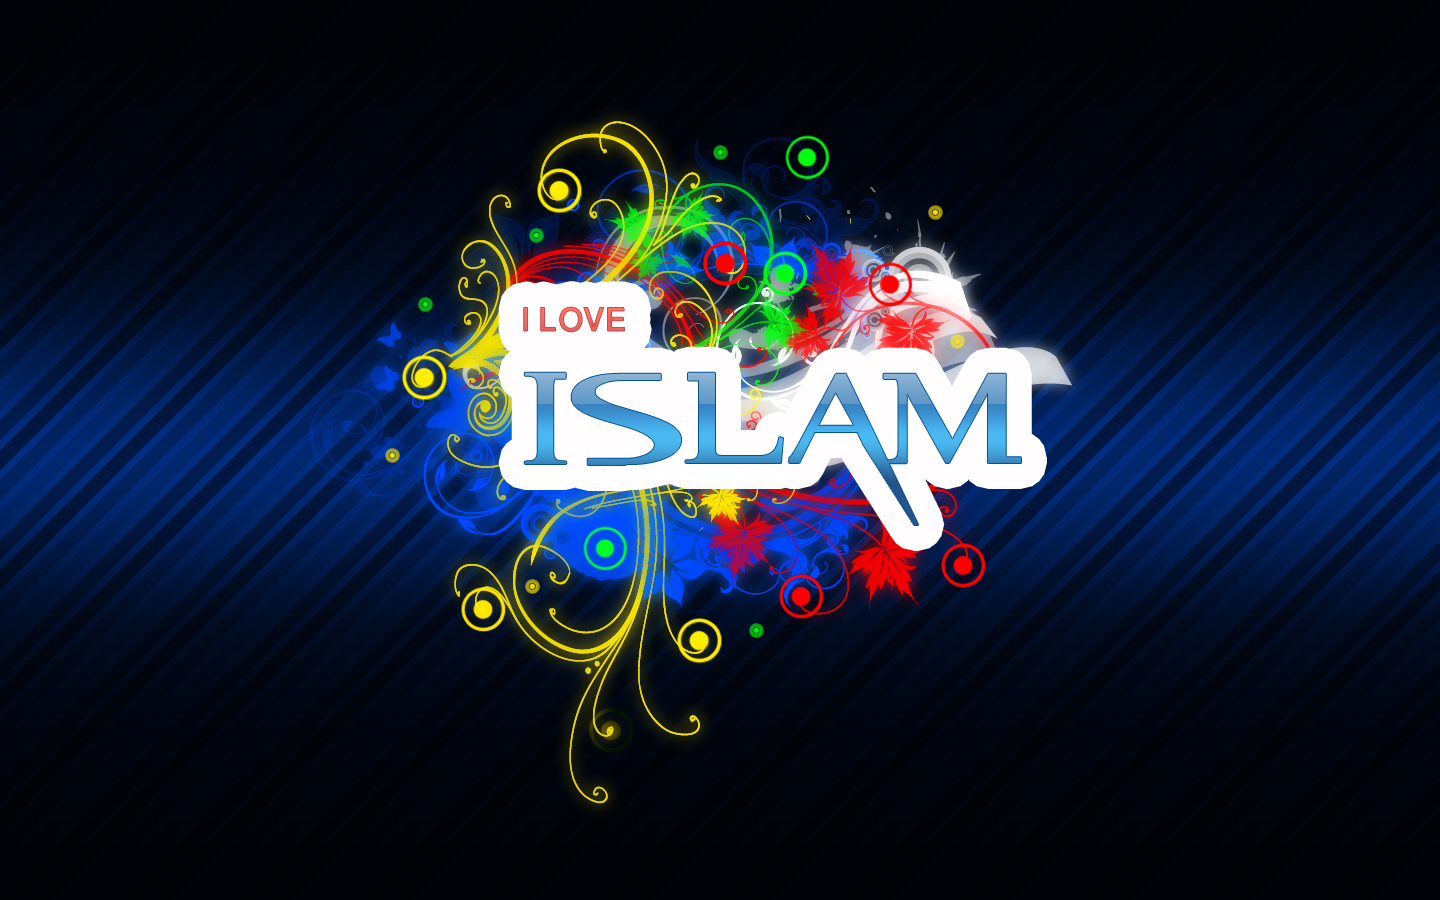 Download image Love Islam Islamic Wallpaper Full Hd Wallpapers Points 1440x900